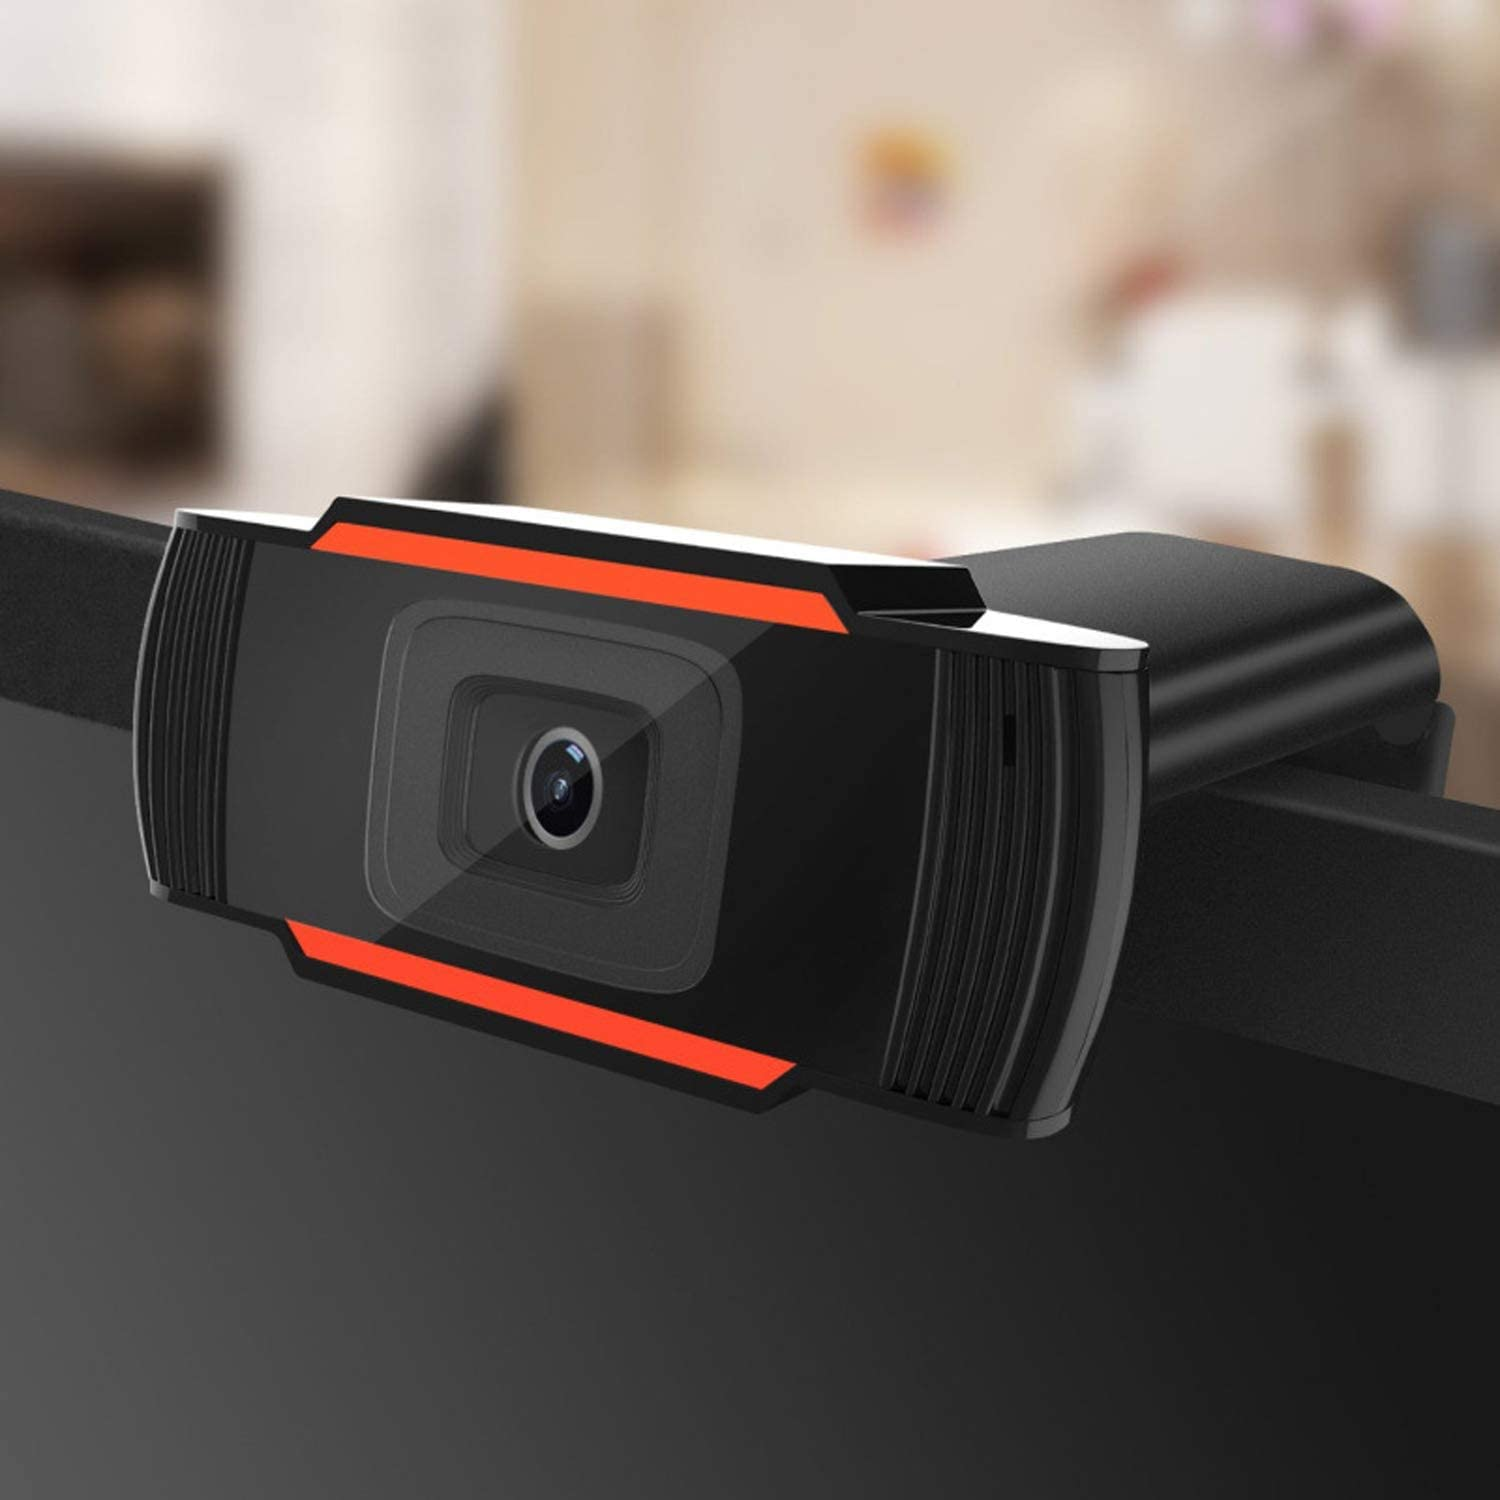 Webcam Streaming HD with Dual Microphone and Ring Light, Aoboco USB Pro Web Camera Stream for Mac Windows Laptop Twitch Xbox One Skype YouTube OBS Xsplit (Orange)